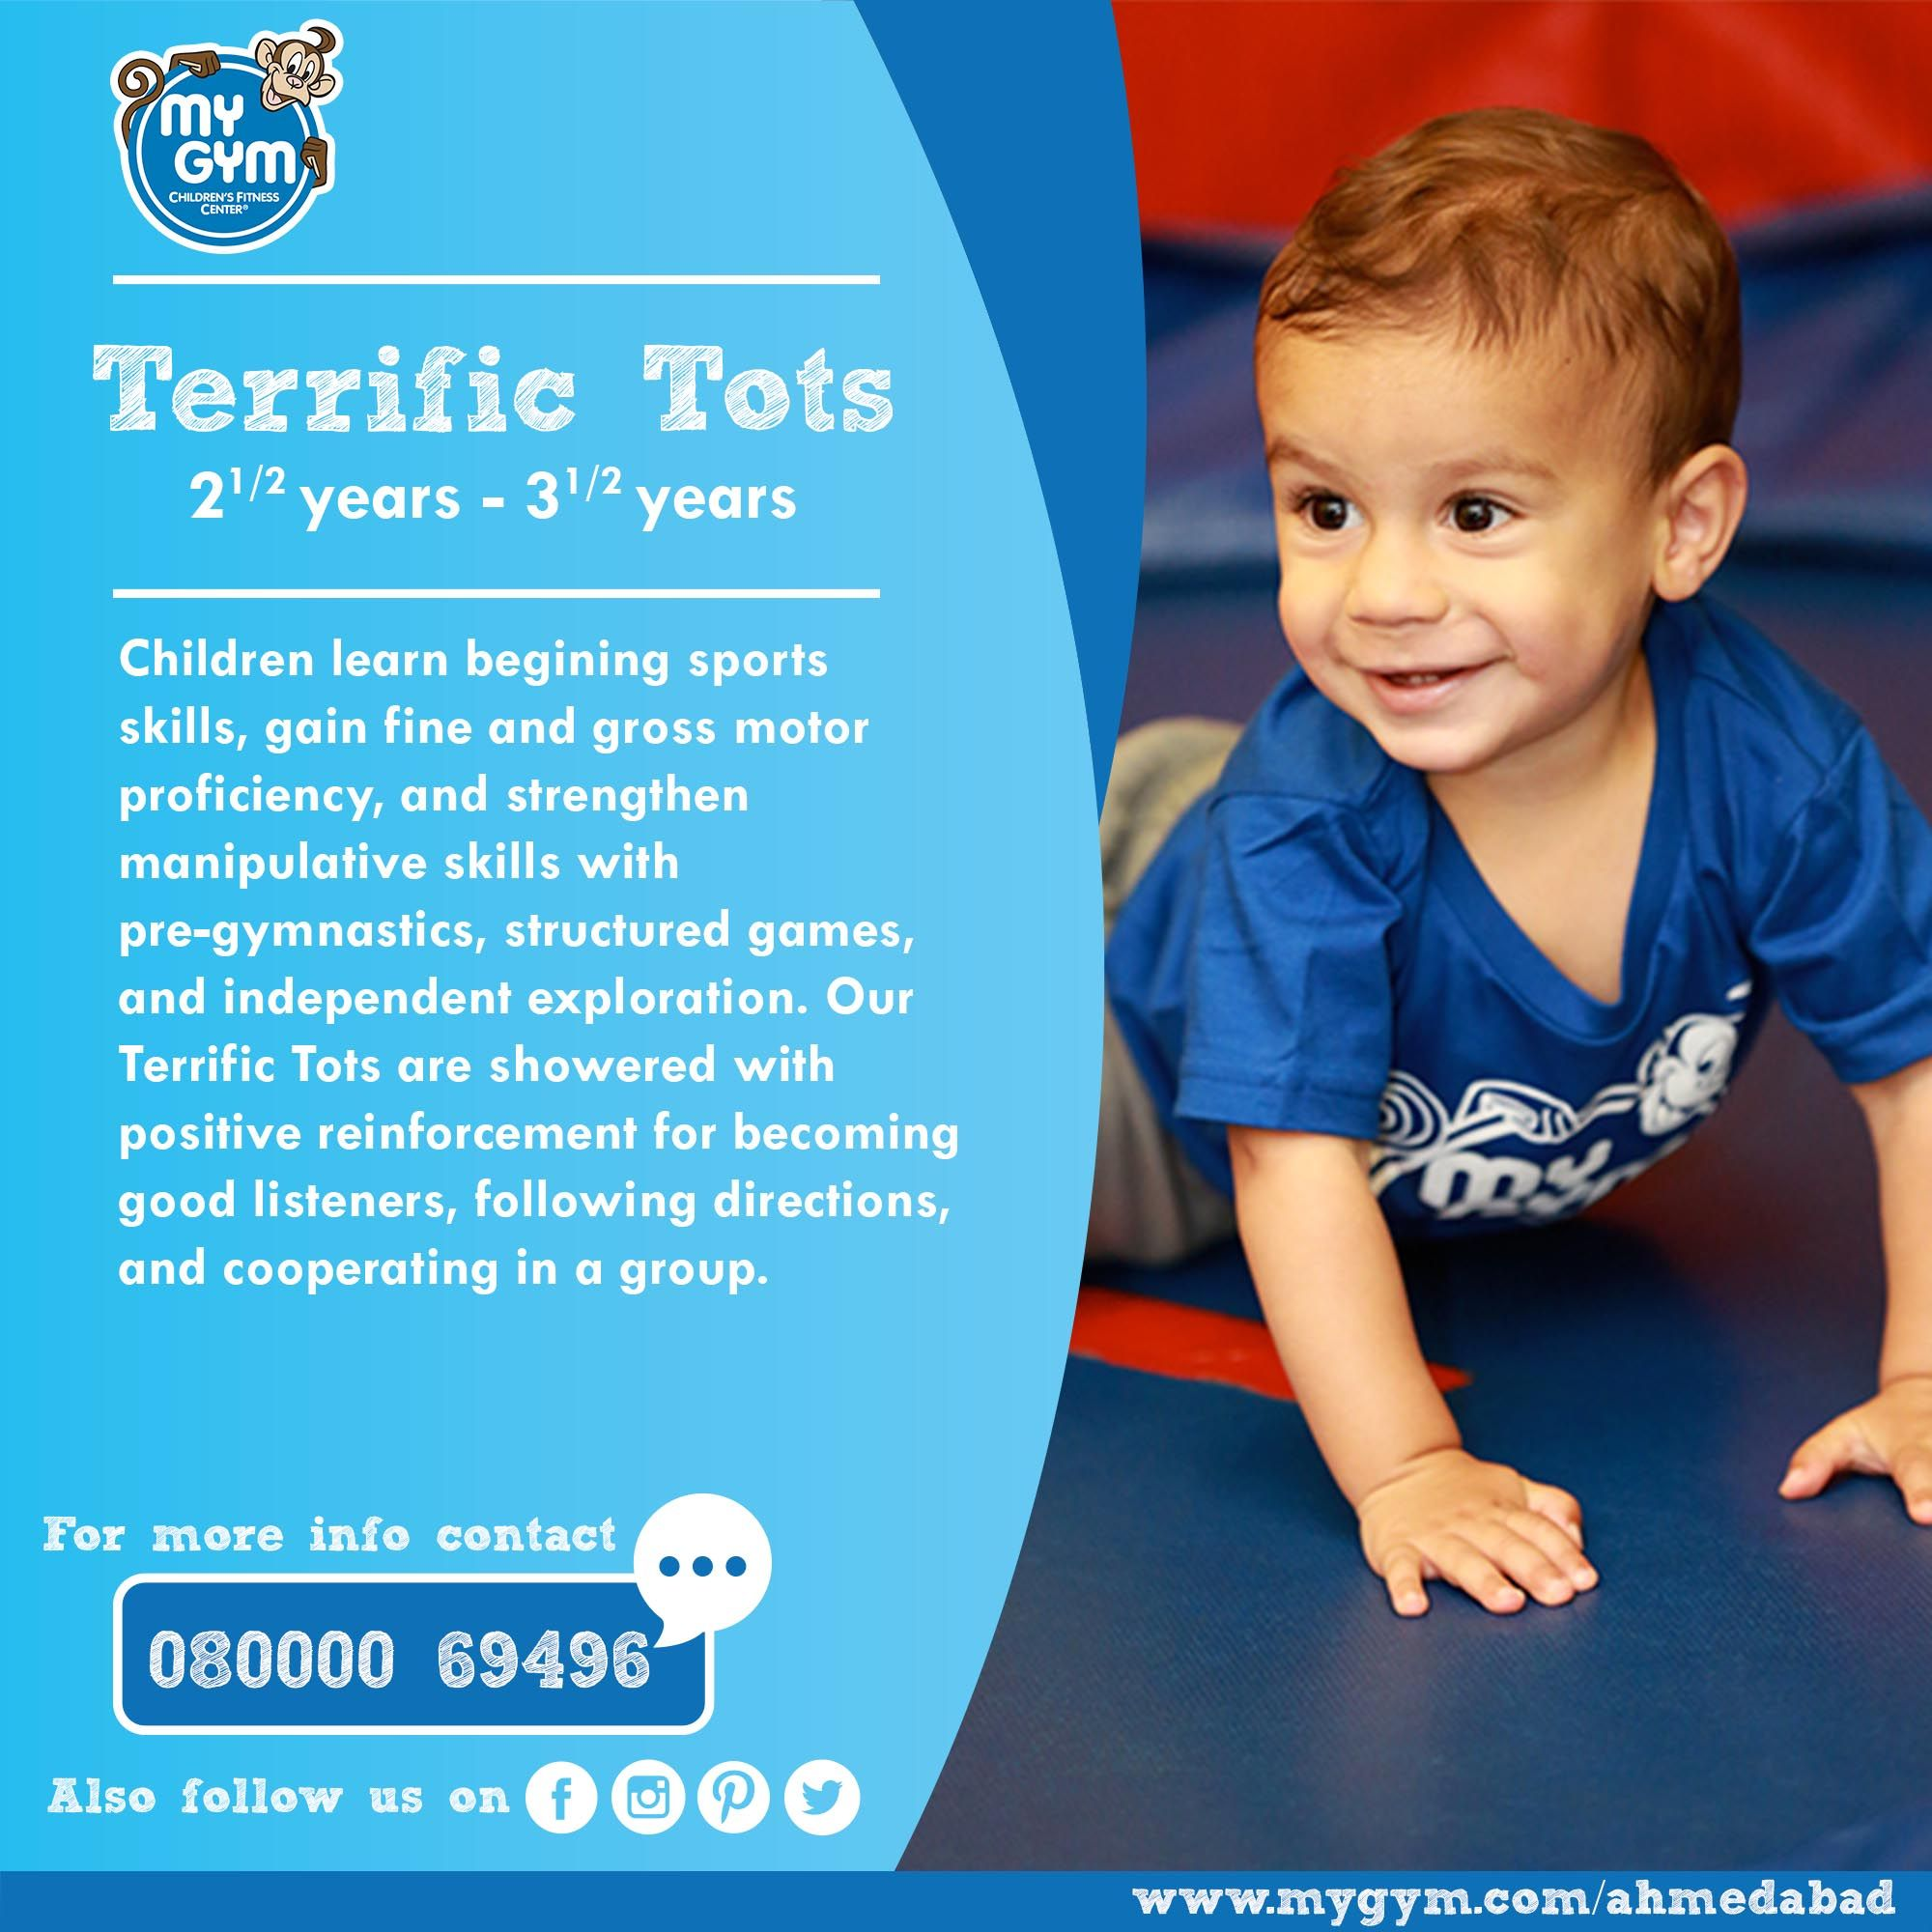 Enthusiastic and wonderful our Terrific Tots program is one of a kind! Visit our Website: http://www.mygym.com/ahmedabad #MyGym #MyGymFun #TerrificTots #MyGymAhmedabad #ComingSoon #Physical #Social #Cognitive #Emotional #Development #InteractiveSkill #Tumbling #Agility #Songs #Dance #PuppetShows #Swings #Adventure #ALotMoreToCome #Christmas #Ahmedabad #Gujarat